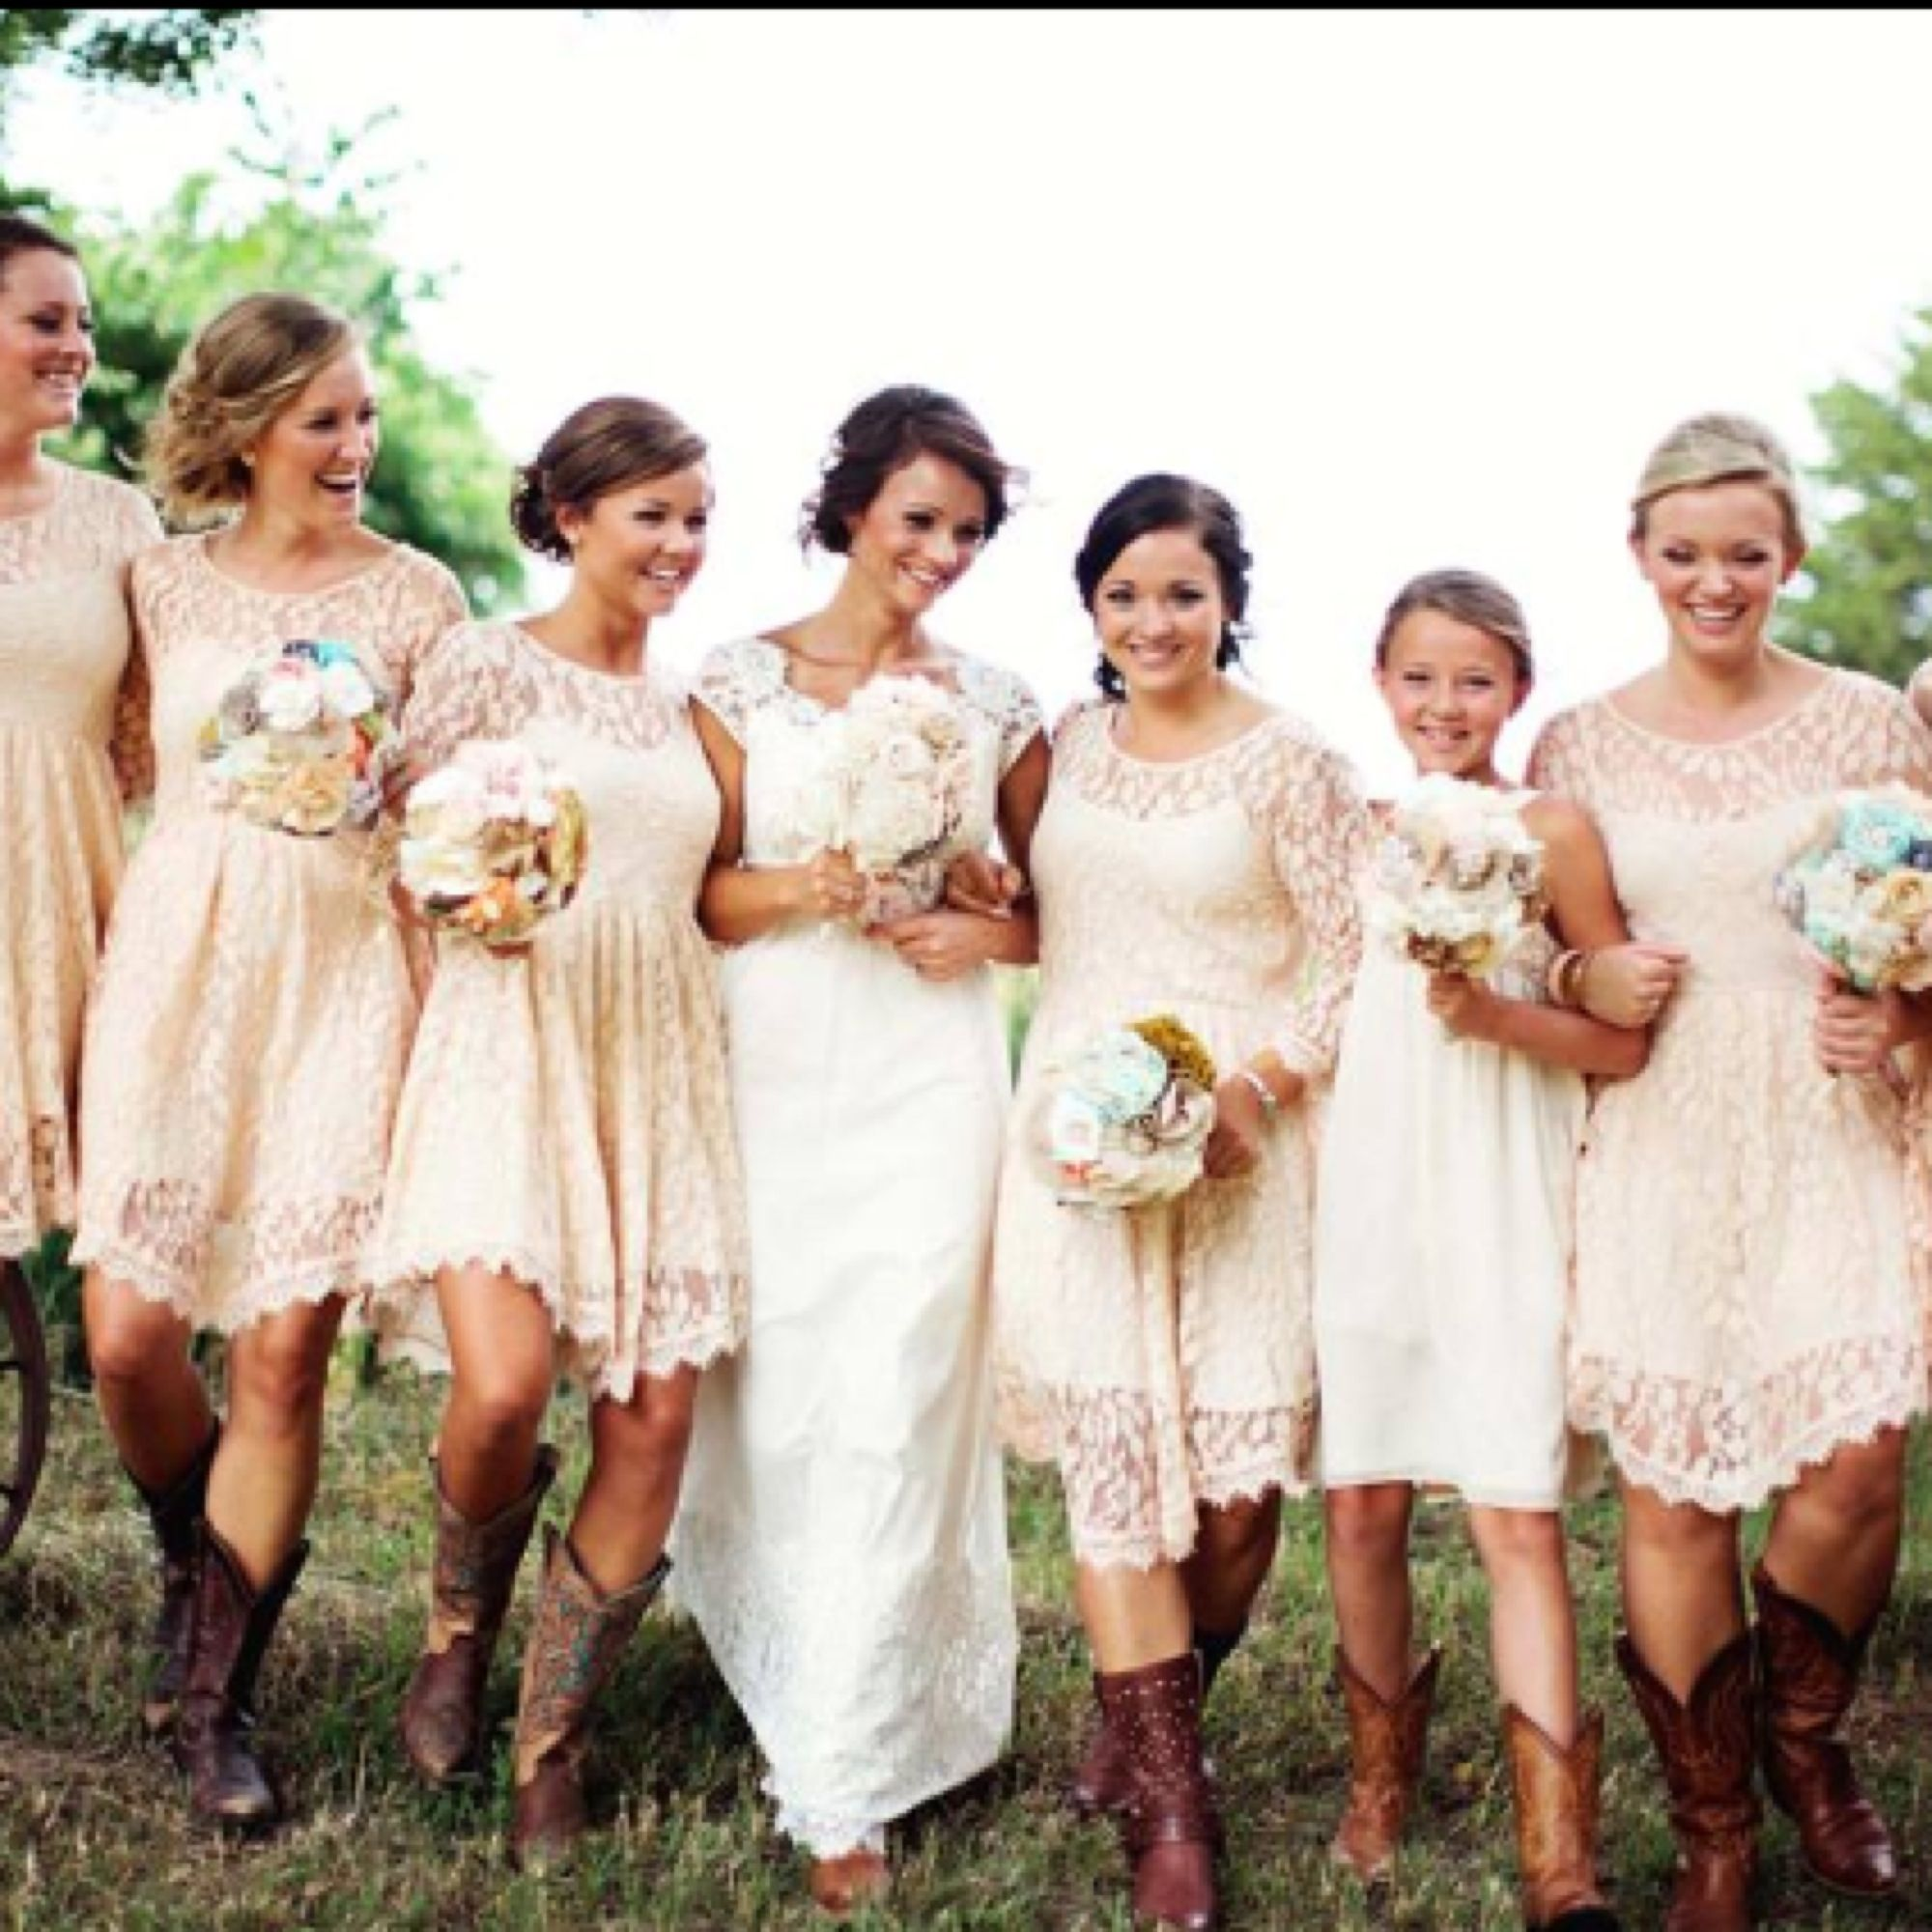 Cows And Lace Country Wedding Bridesmaids Bridesmaid Dresses Cowboy Boots